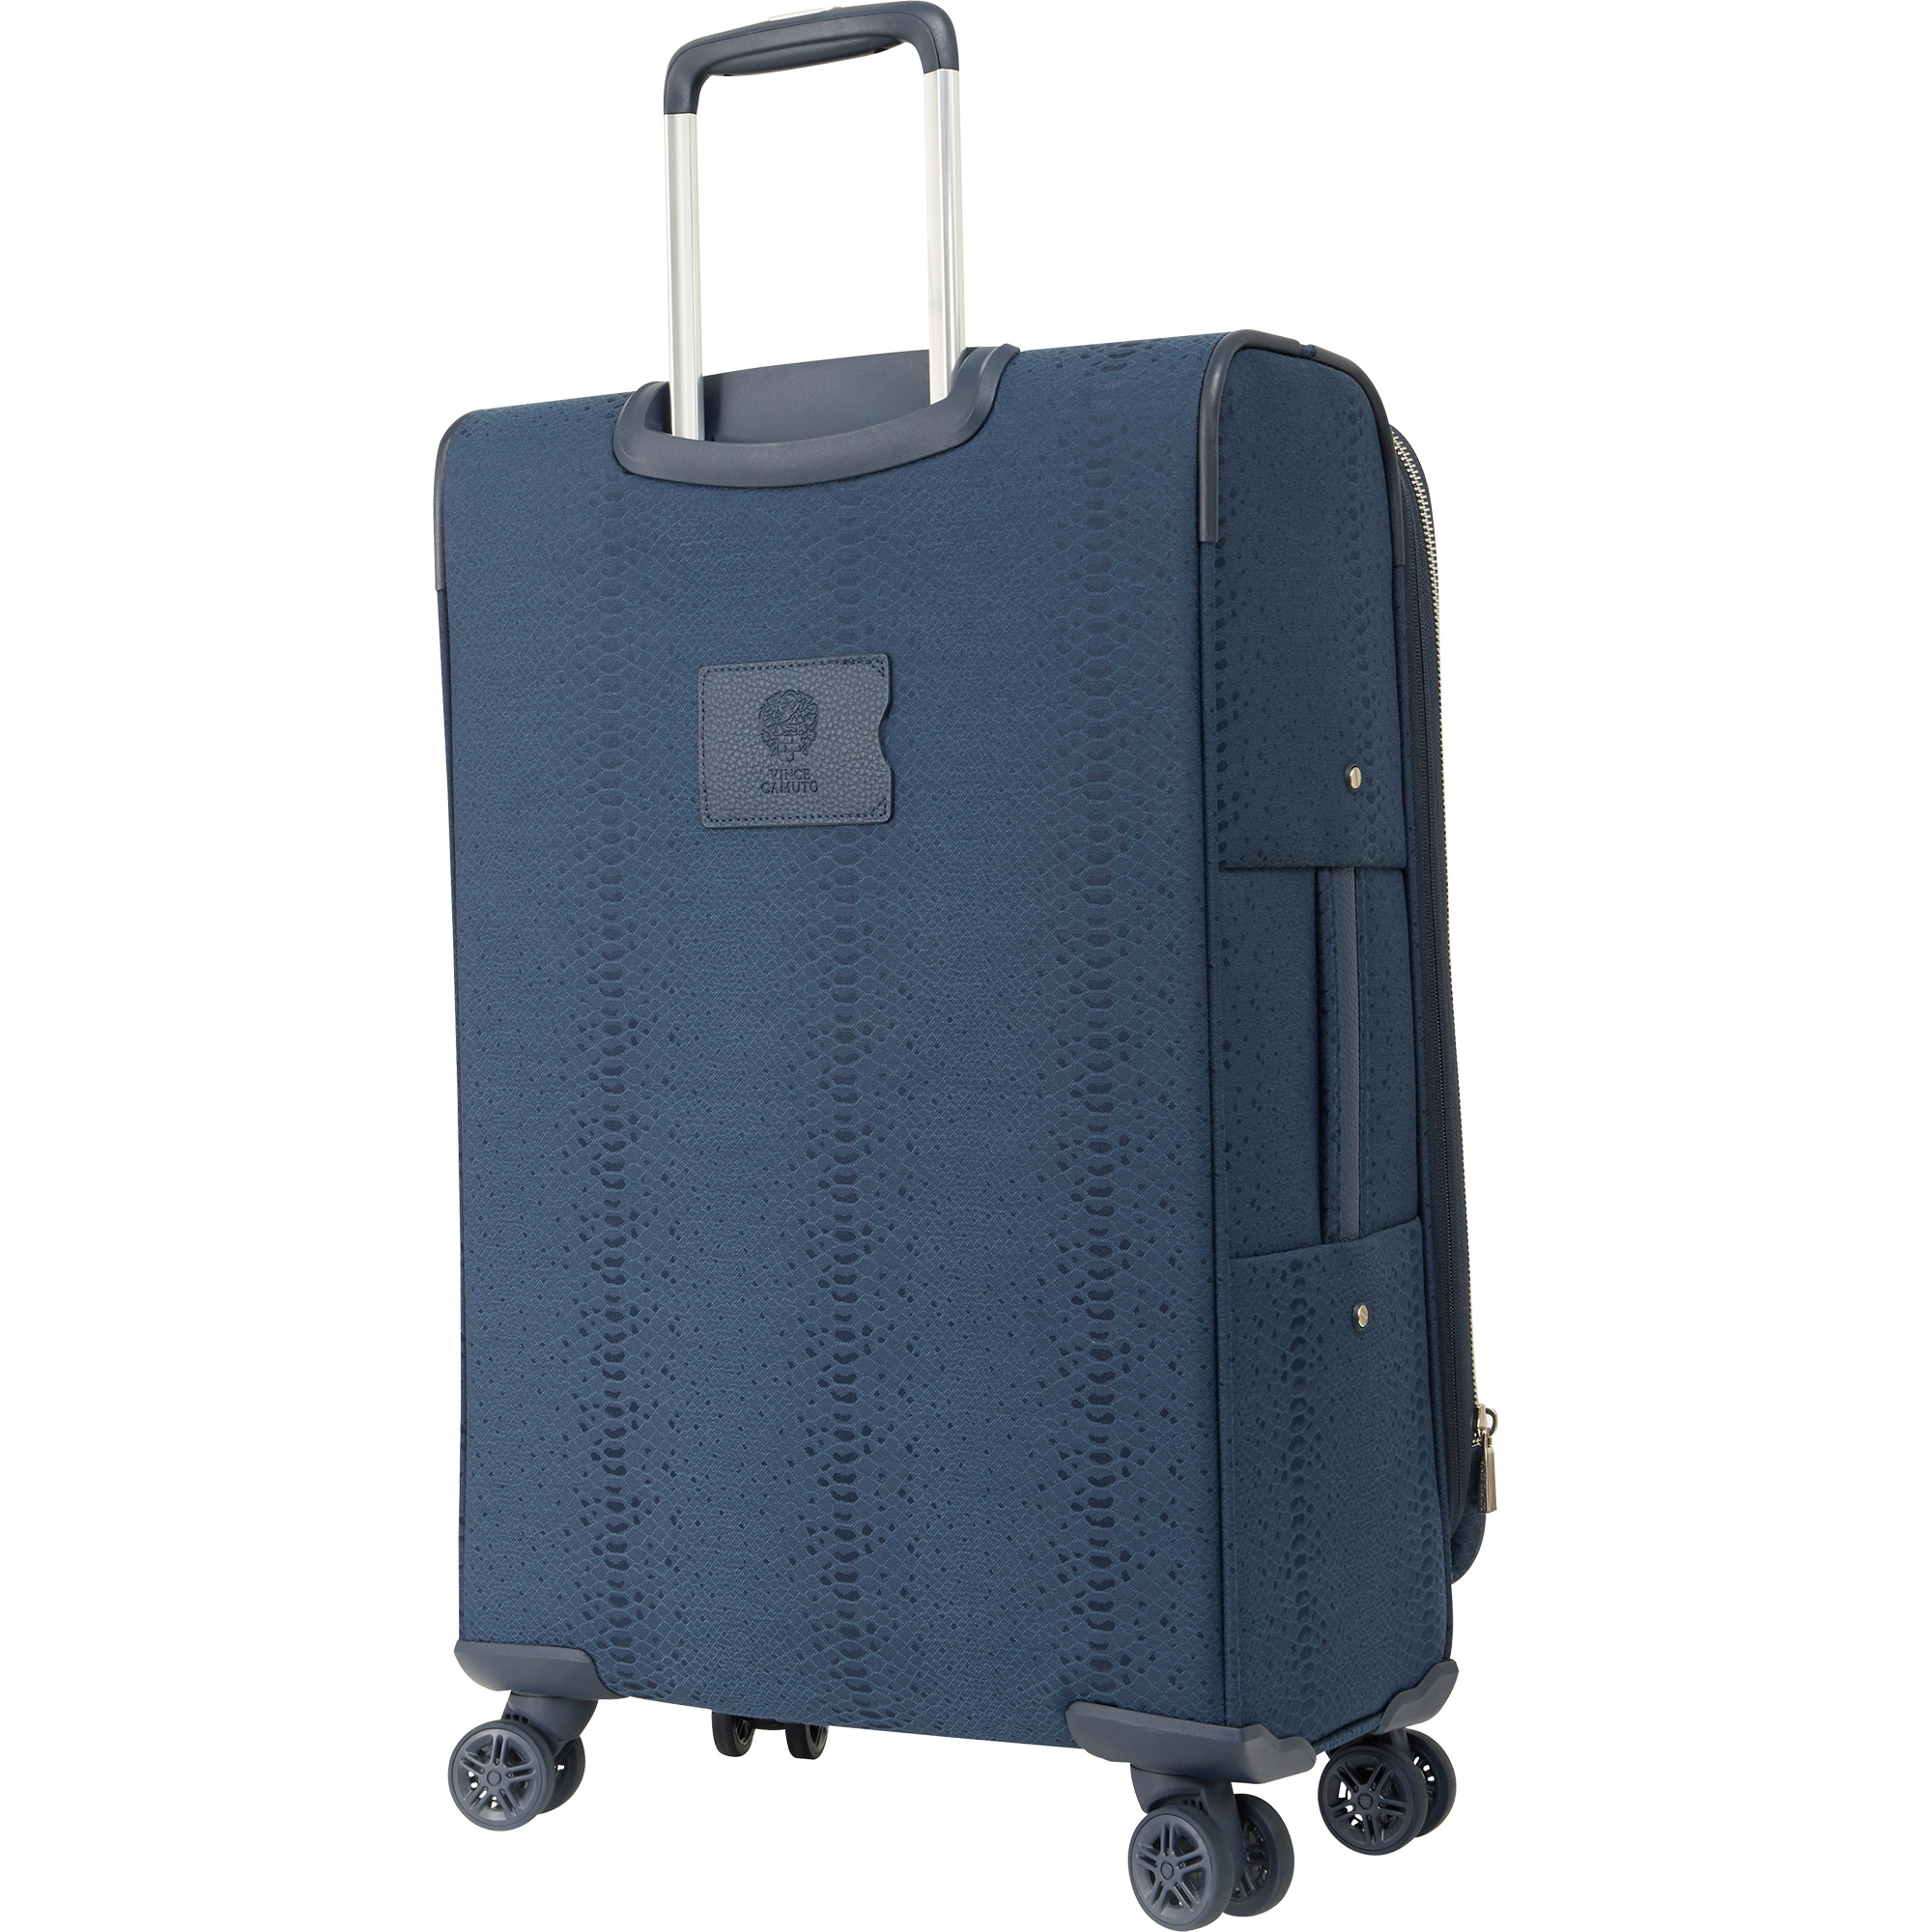 601fd5f7a Shop Vince Camuto Ameliah 4-piece Expandable Spinner Luggage Set - Free  Shipping Today - Overstock - 20192708